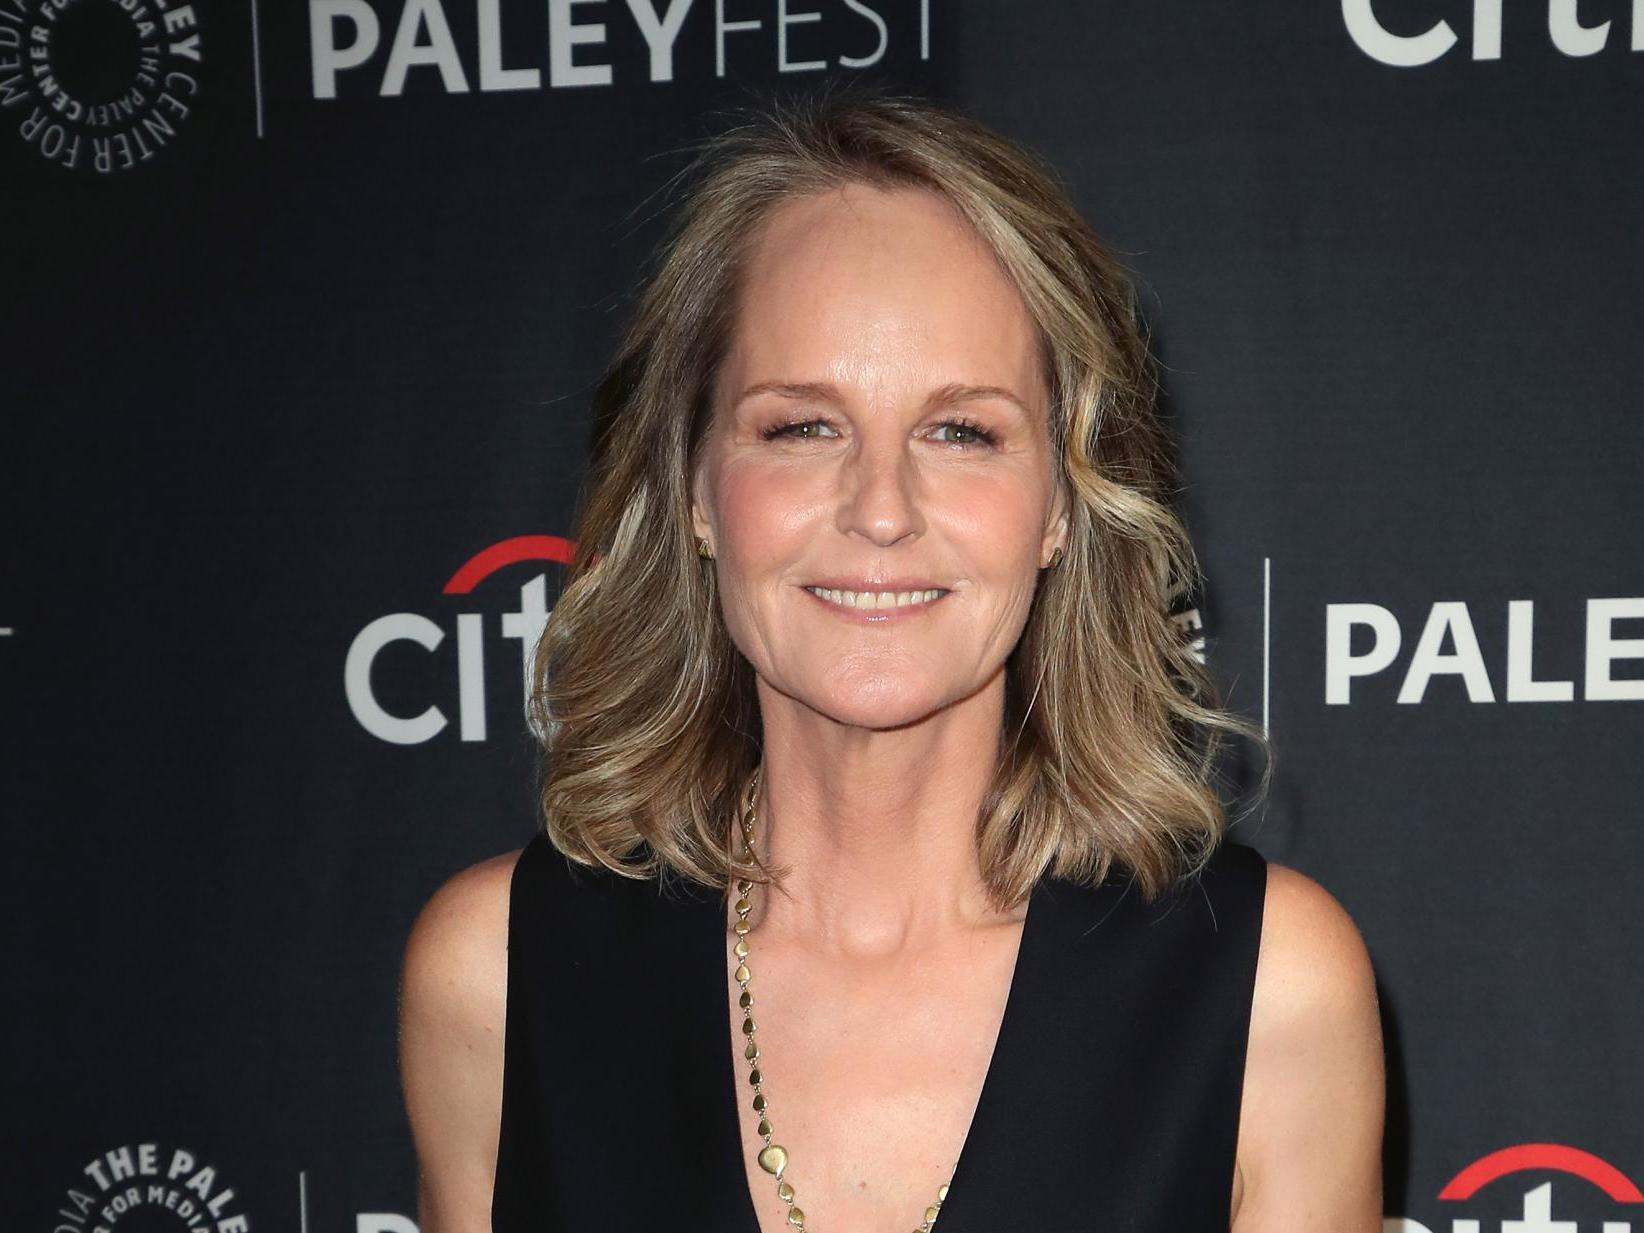 Helen Hunt: Mad About You actor taken to hospital after car flips over in crash